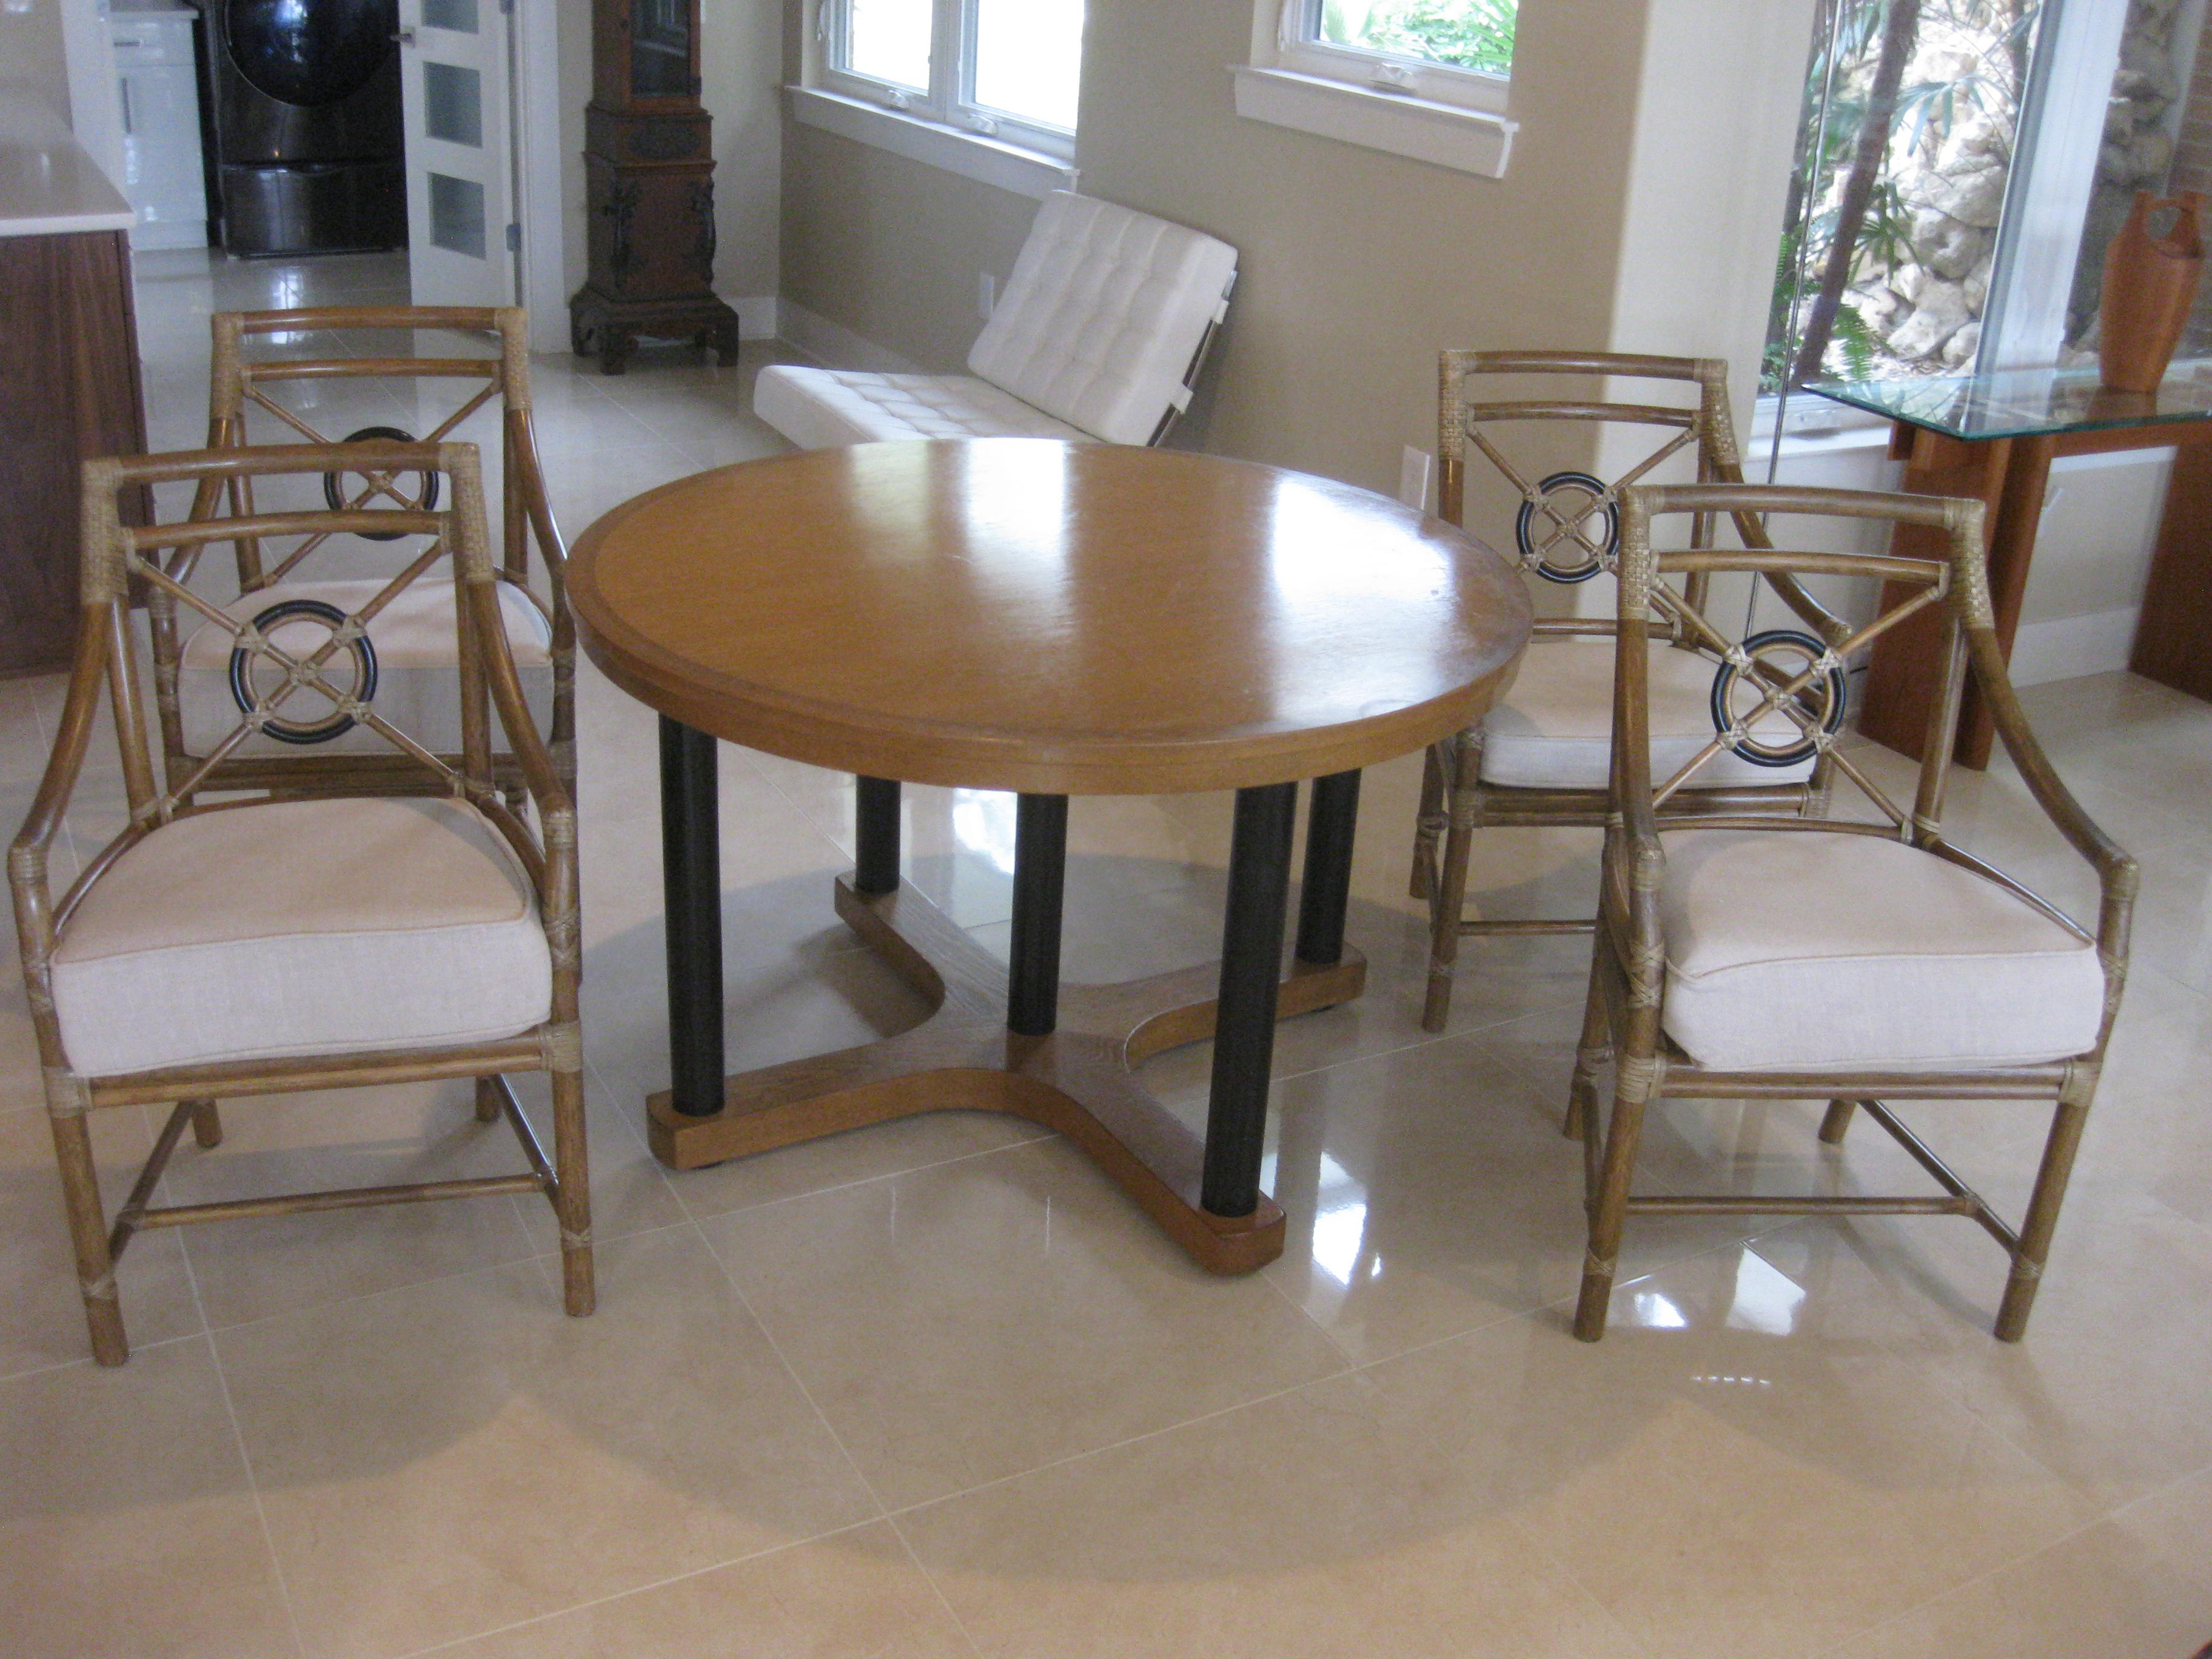 dining chairs set of 4 target refurbished barber table and arhaus mirrored coffee used